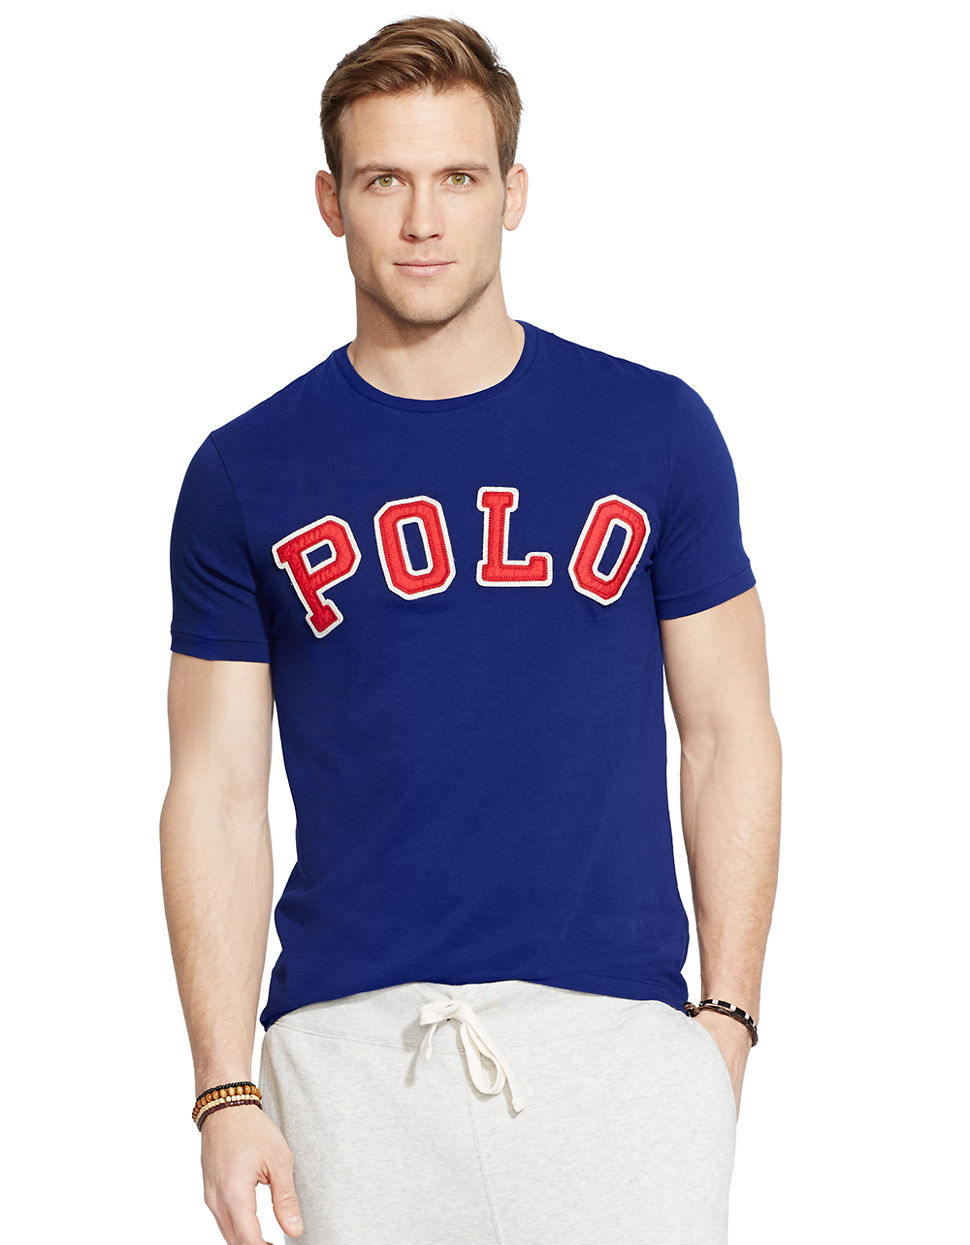 Lyst polo ralph lauren custom fit polo t shirt in blue for Polo custom fit t shirts